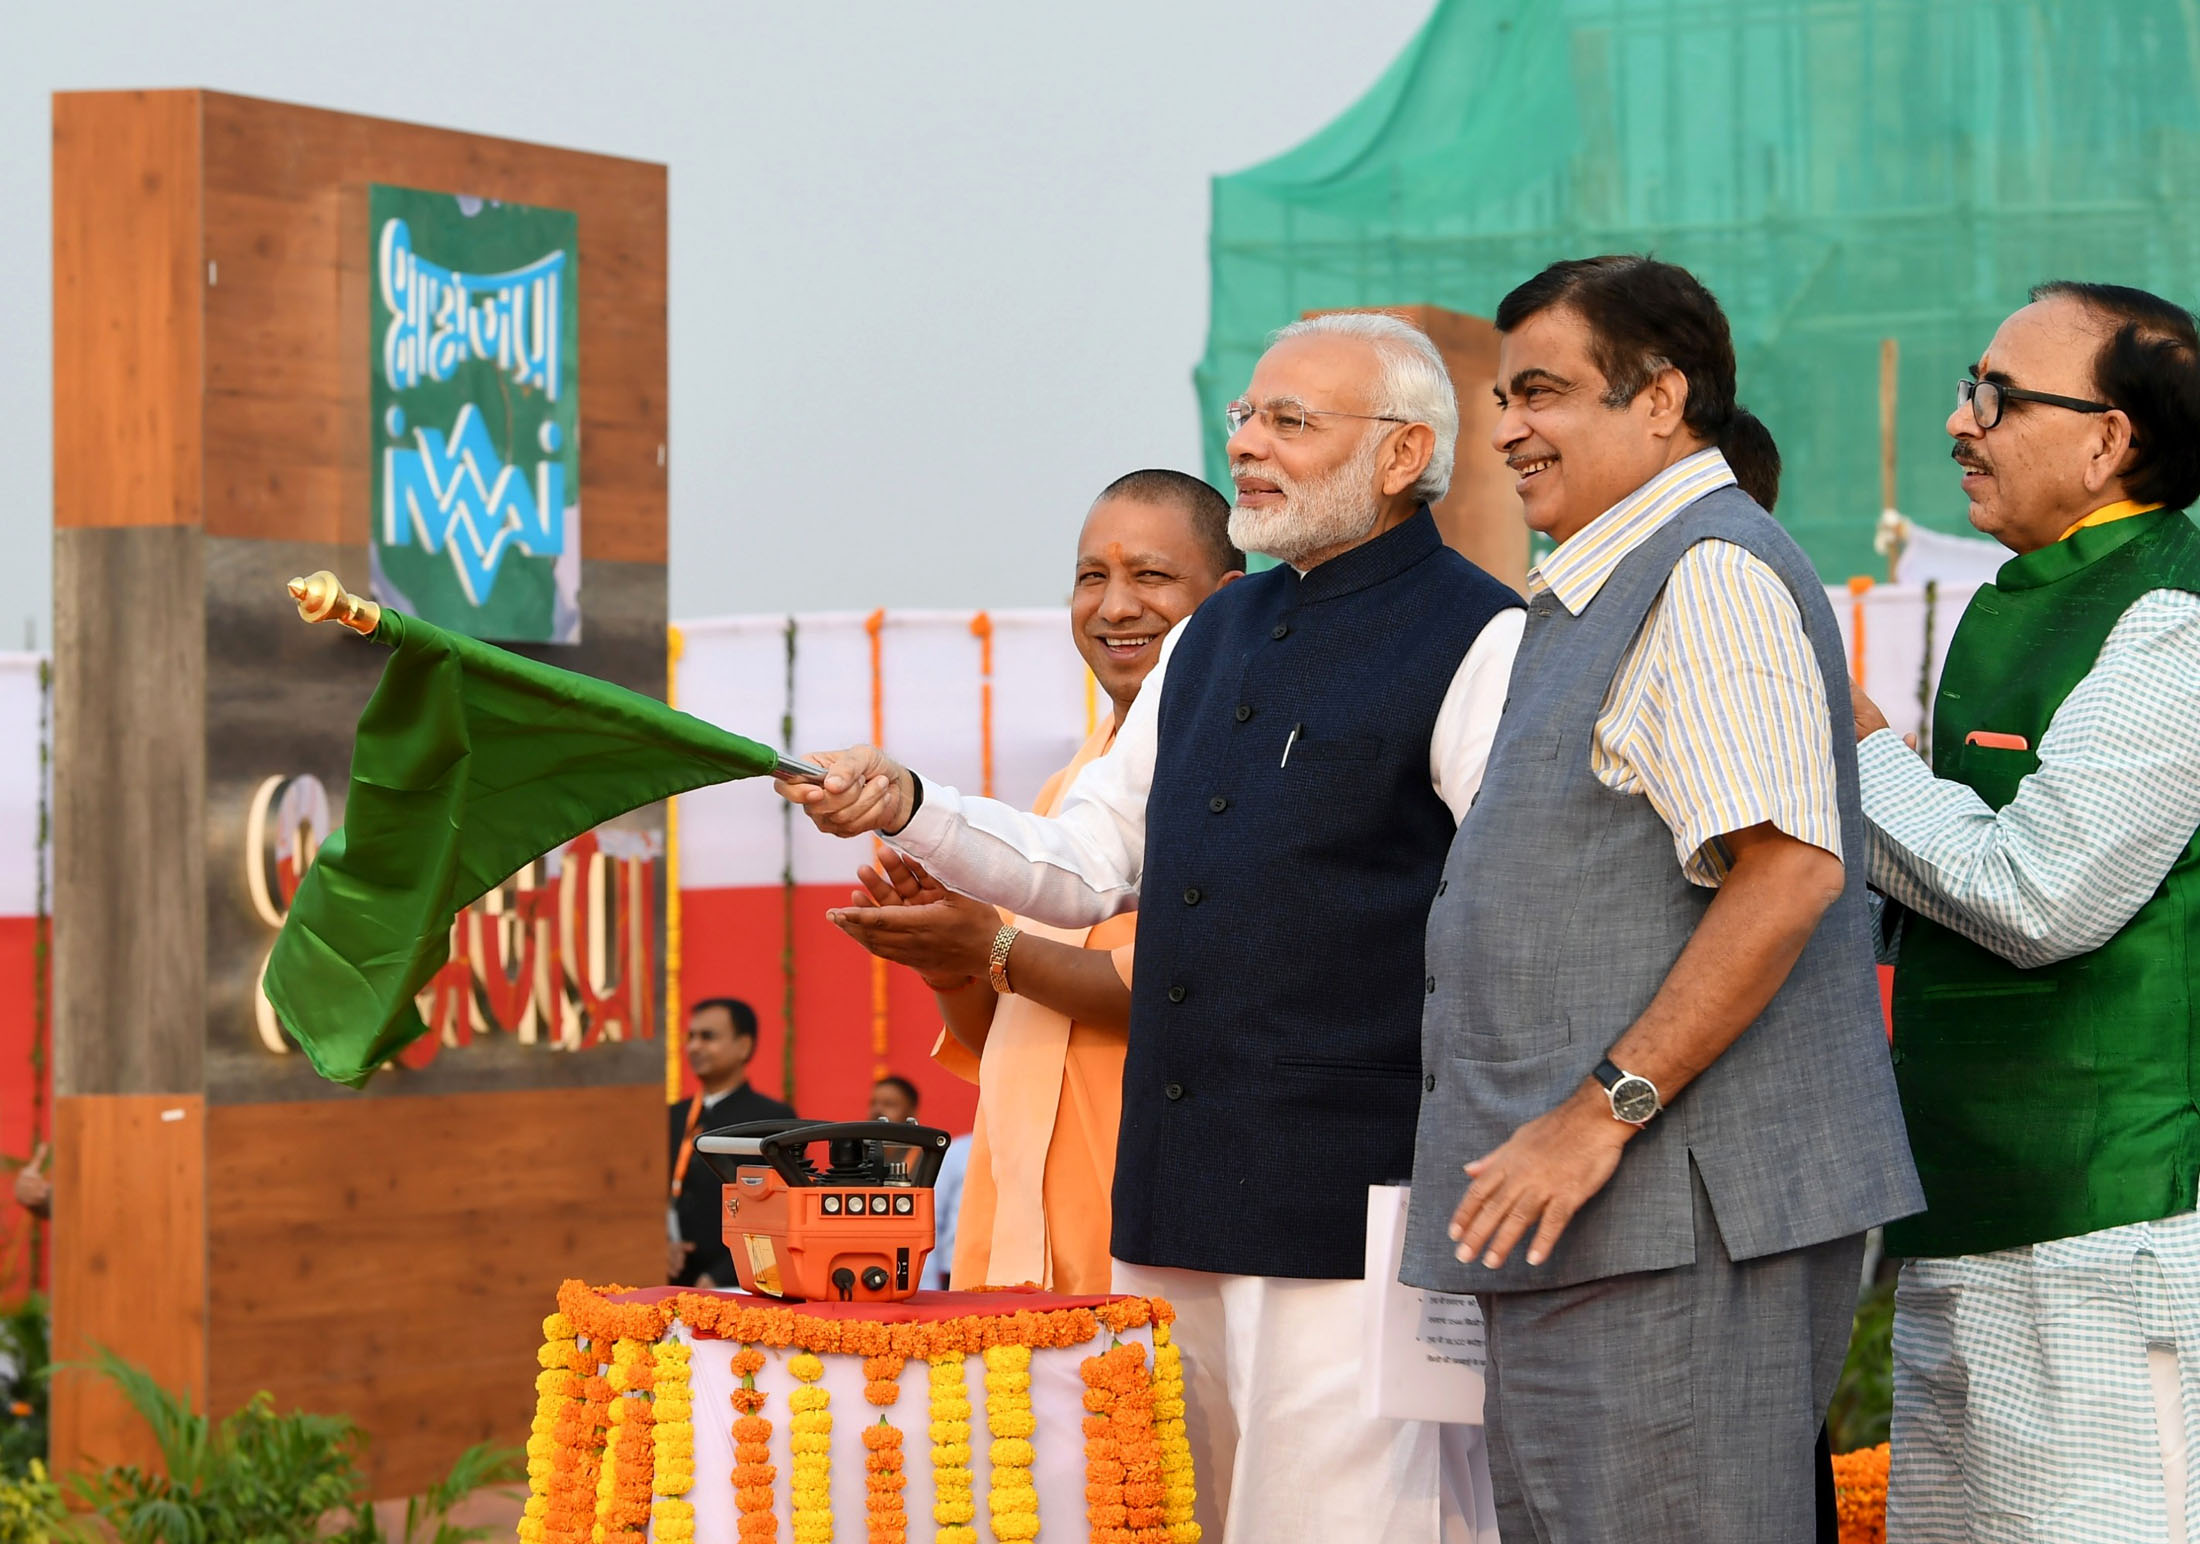 Prime Minister Narendra Modi dedicates the India's first Multi-Modal Terminal on river Ganga to the nation, in Varanasi, Uttar Pradesh on November 12. Minister for Road Transport & Highways, Shipping and Water Resources, River Development & Ganga Rejuvenation Nitin Gadkari and the Chief Minister of Uttar Pradesh Yogi Adityanath are also seen. Photo courtesy: Press Information Bureau